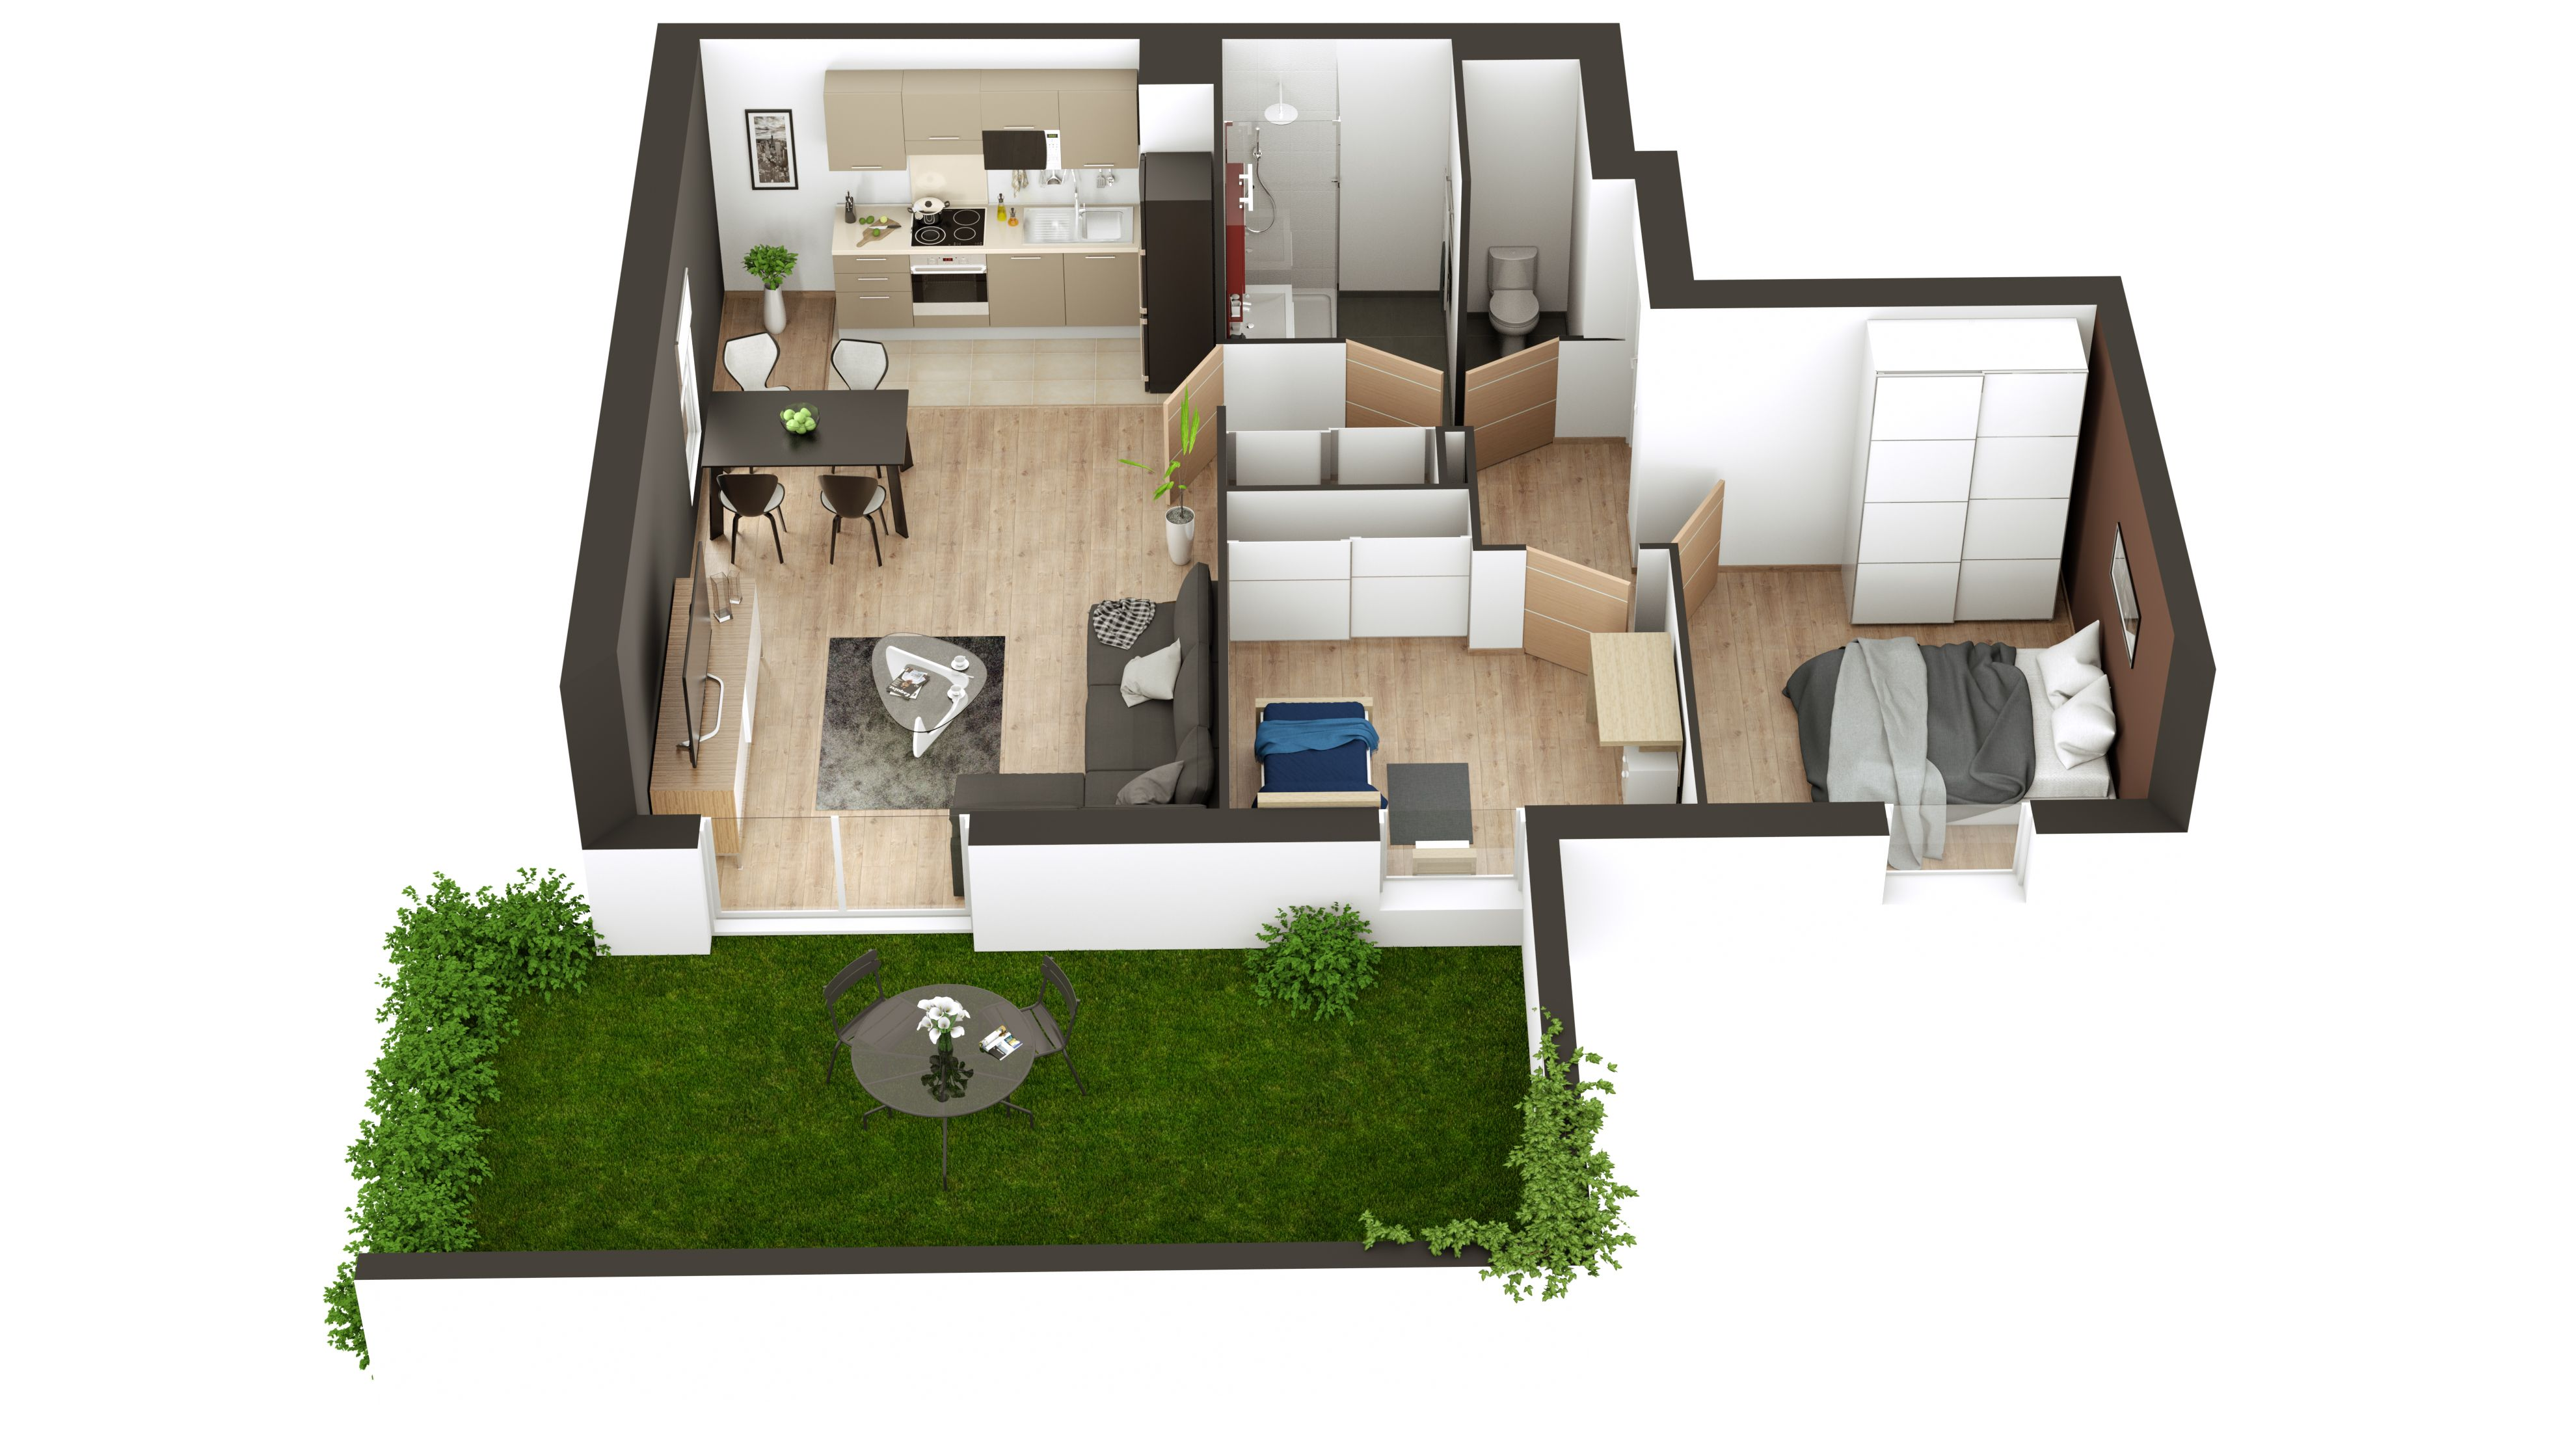 3D Floor Plan Realize Dwith My Sketcher. Create Your Own House. | 3D Plans  | Pinterest | Sketchers, 3d Architecture And 3d